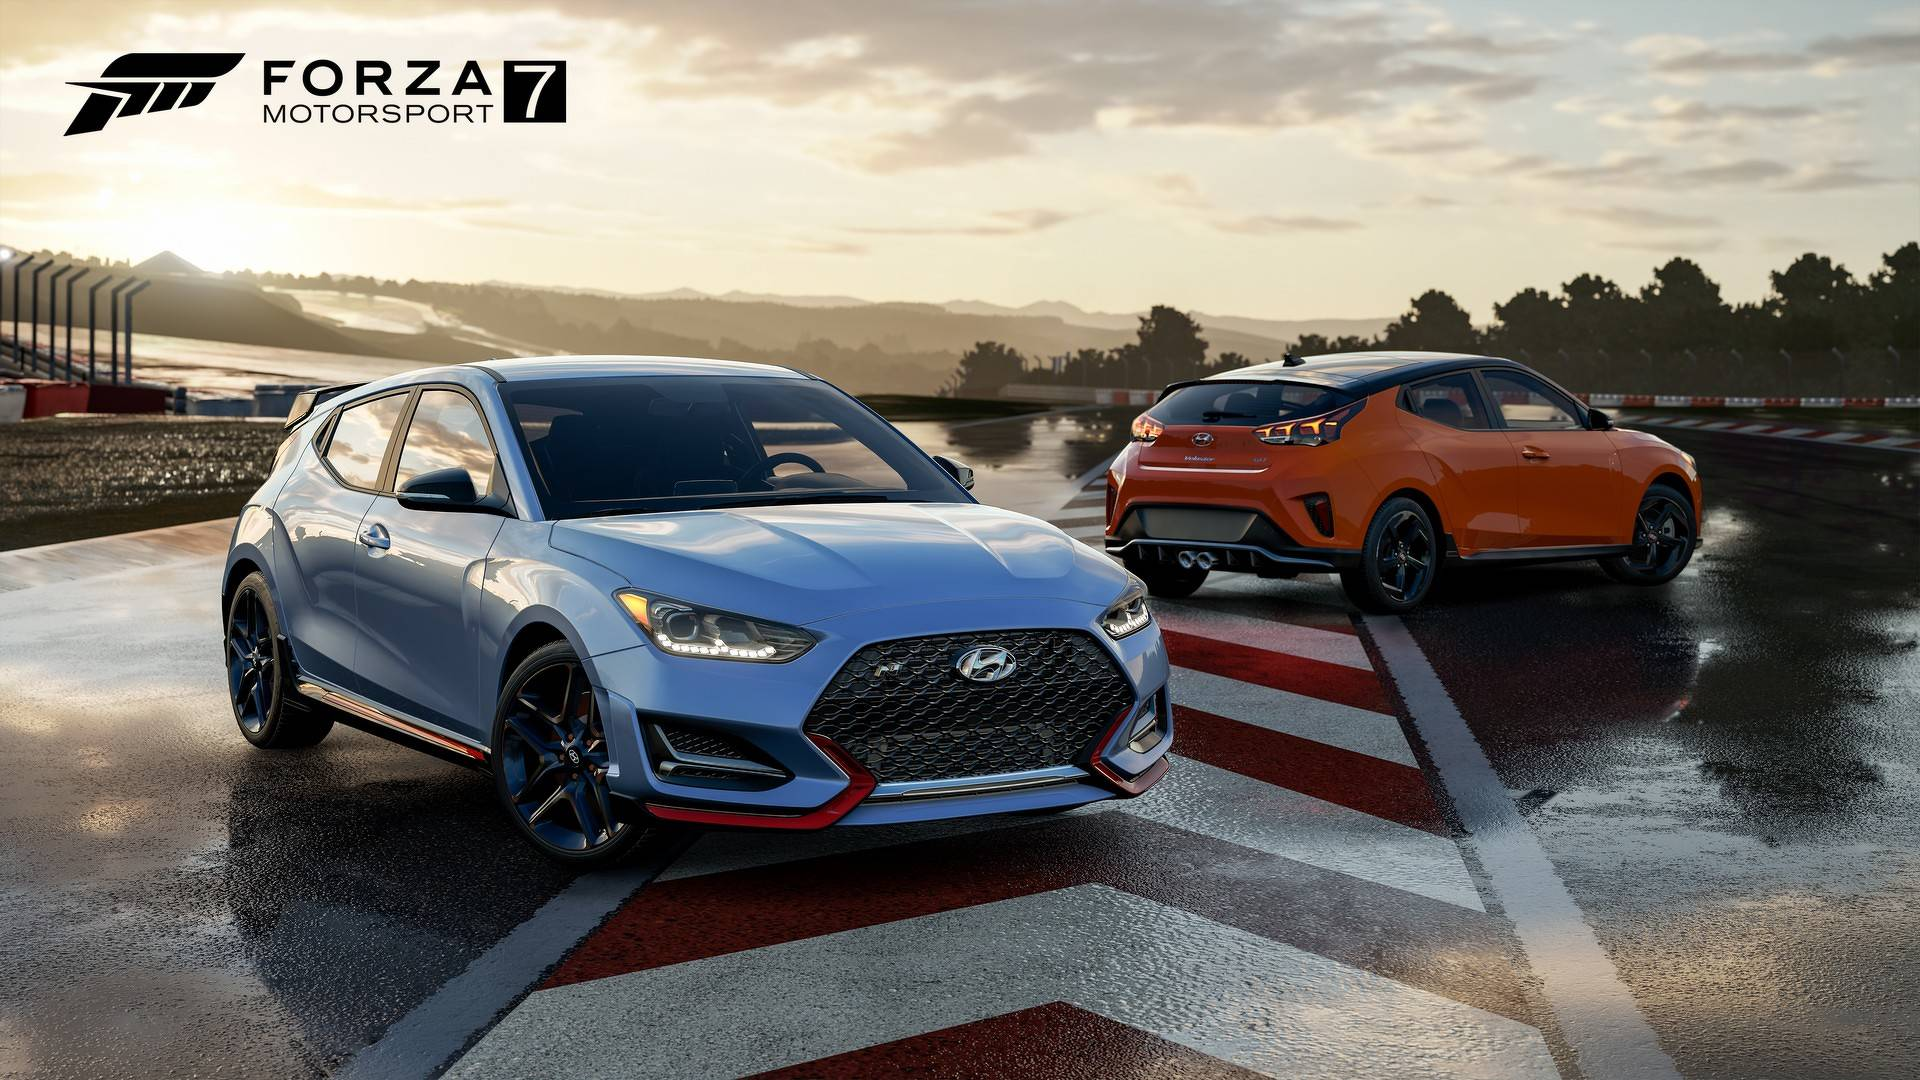 debut marvel news the seoul veloster about its stylish and make be en in introduced to fans hyundai room design man s will hollywood new ant wasp all exceptional performance of worldwide jan soon capabilities